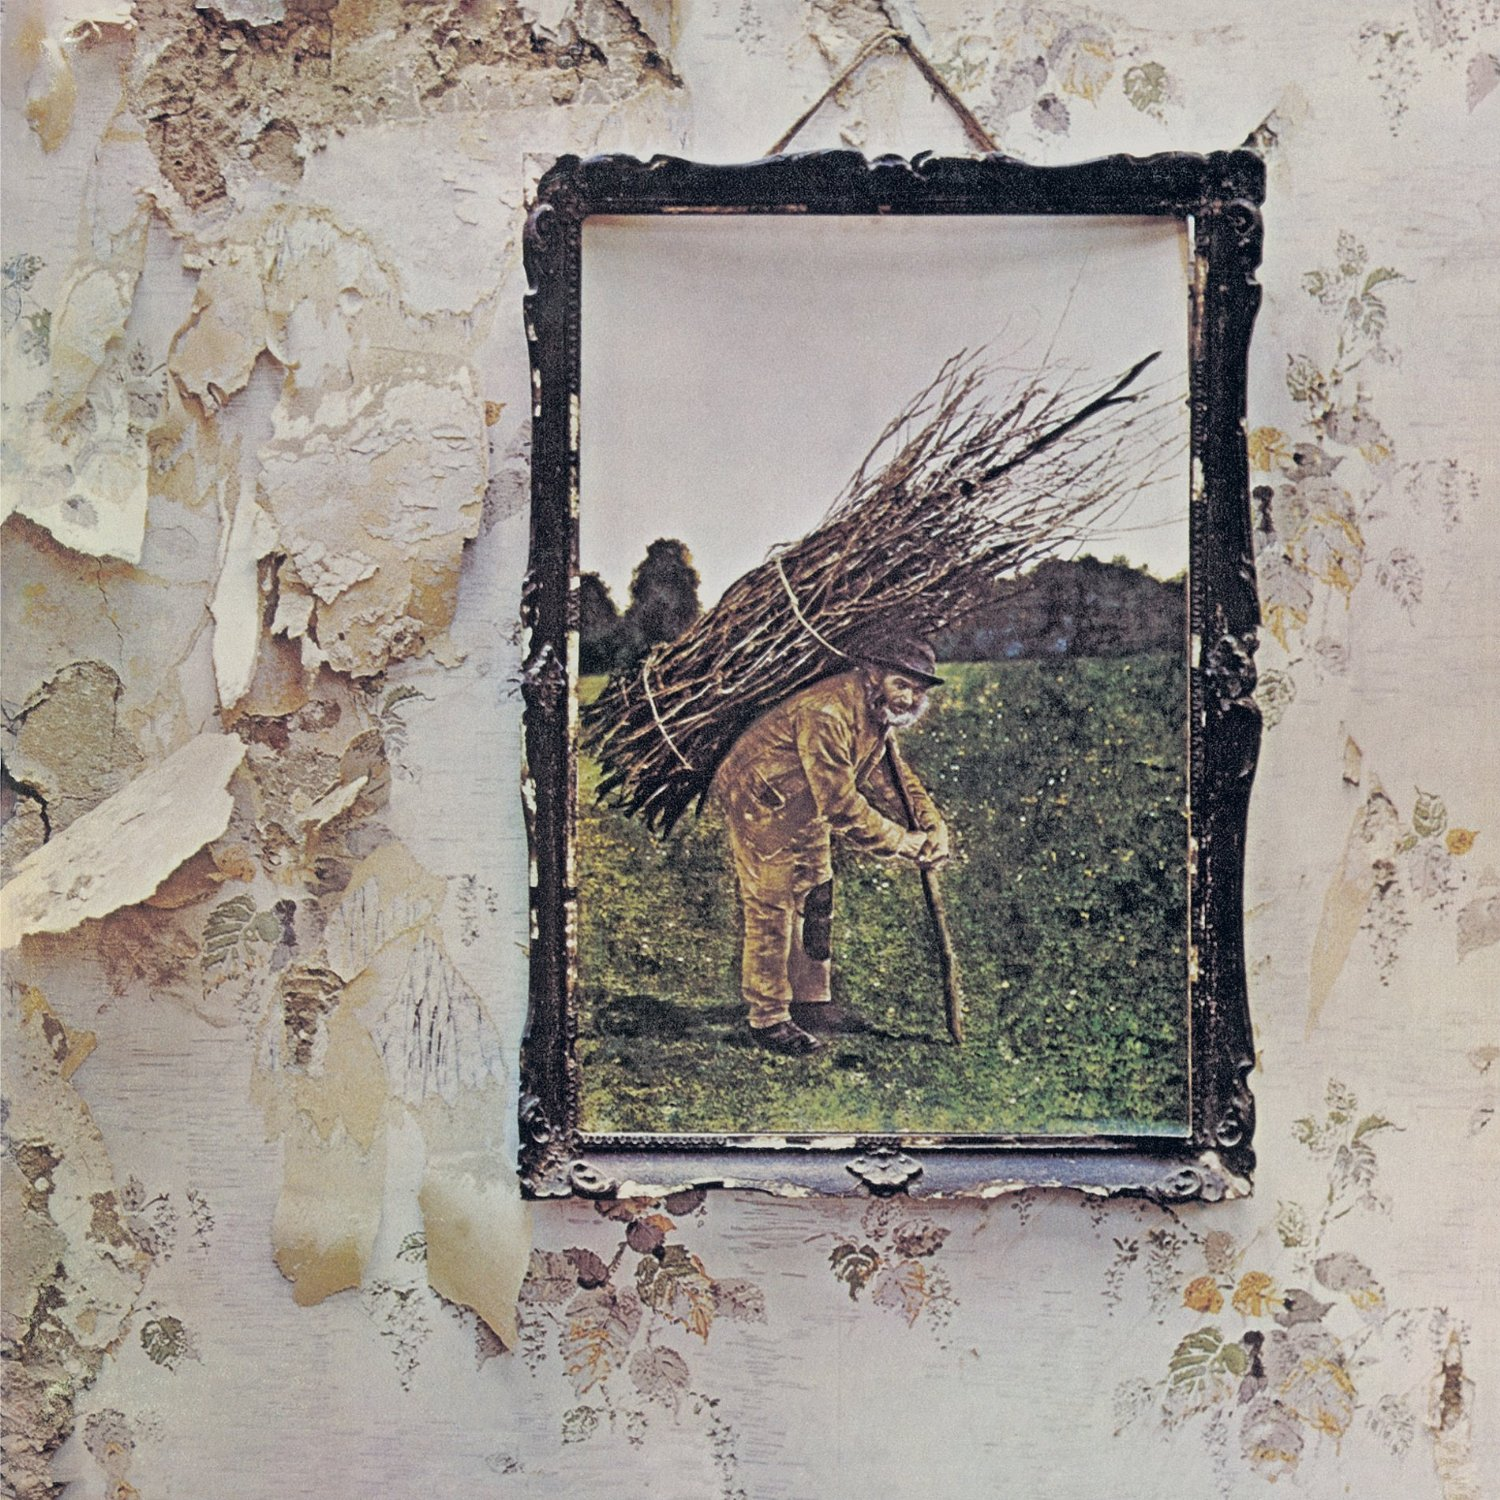 vinyl LP LED ZEPPELIN Led Zeppelin IV